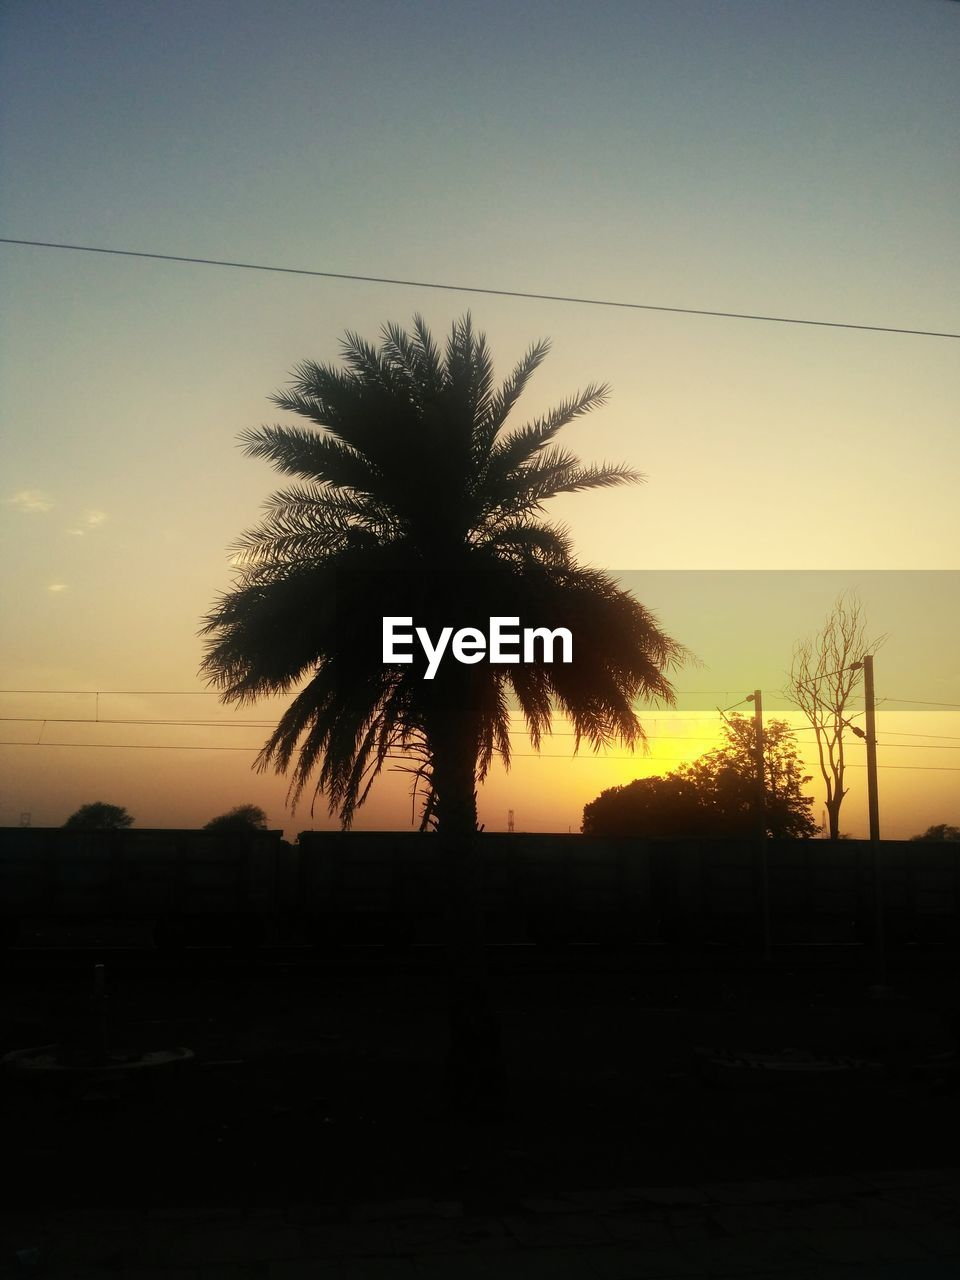 tree, silhouette, palm tree, sunset, tranquil scene, tranquility, no people, scenics, beauty in nature, sky, nature, clear sky, outdoors, growth, day